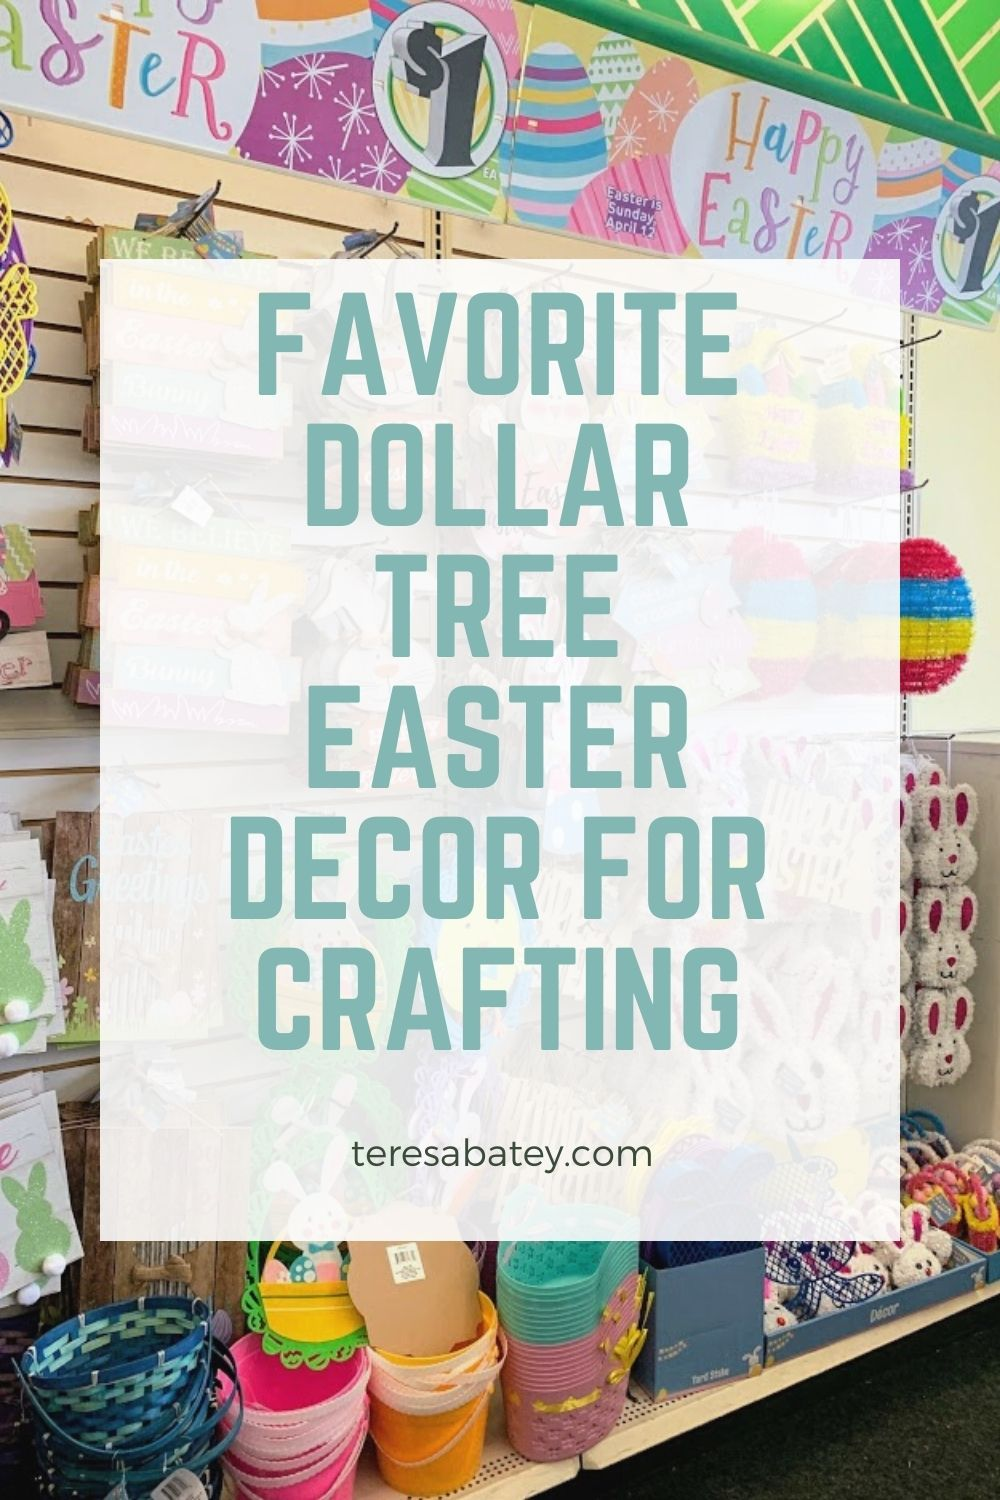 Favorite Dollar Tree Easter Decor for Crafting